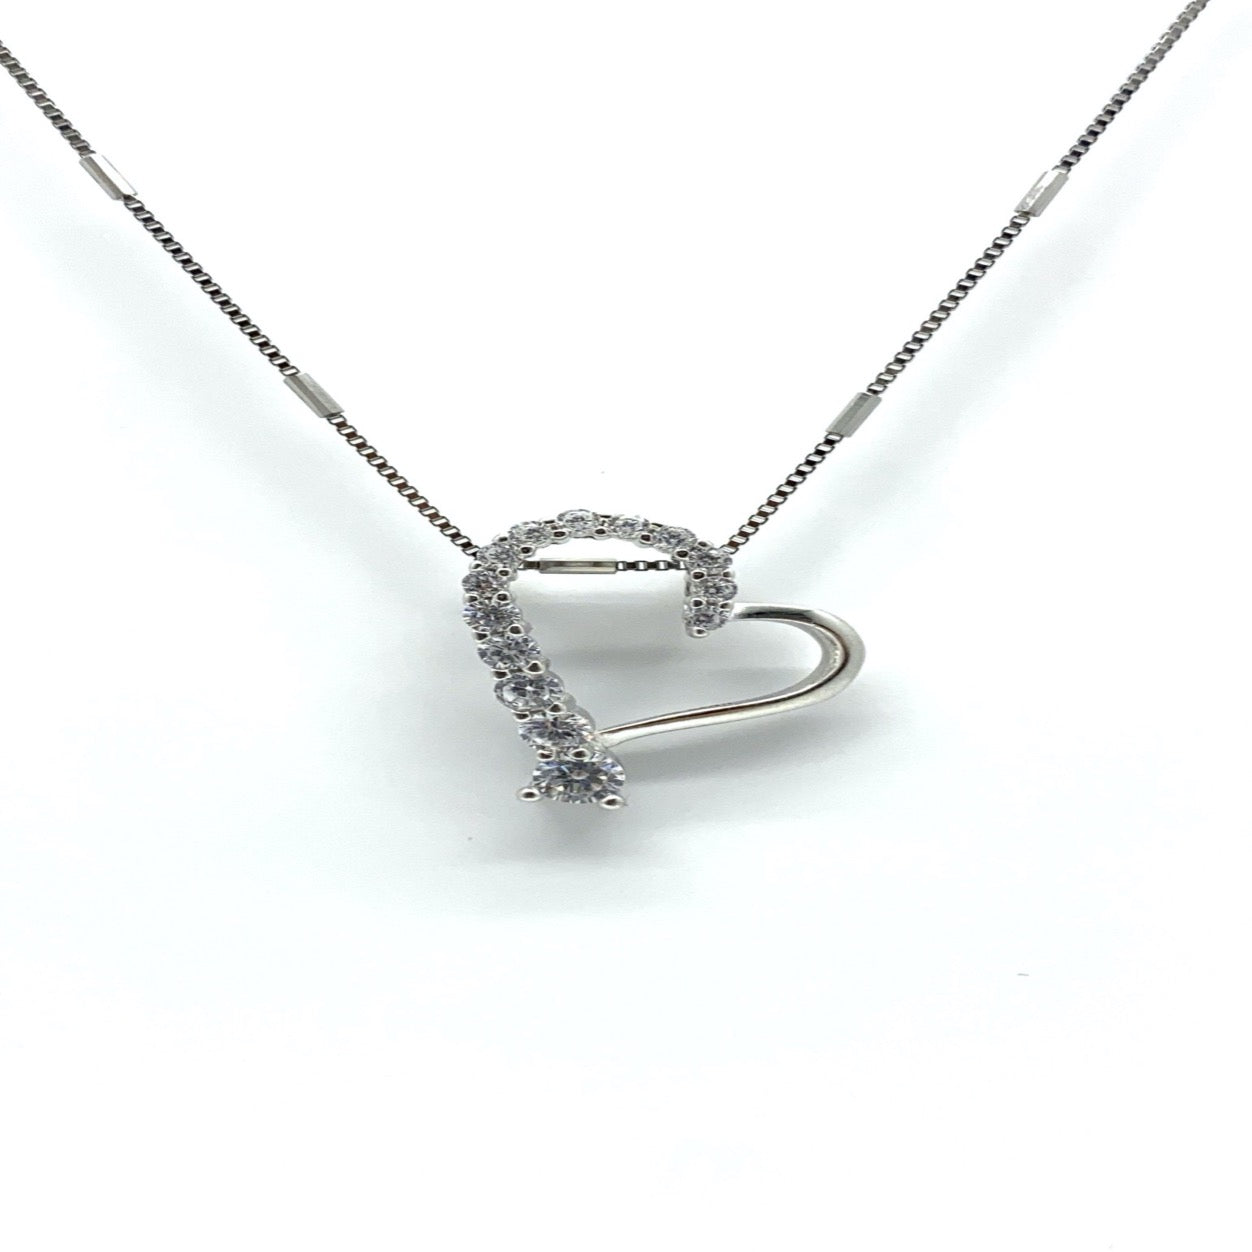 CINDY- graduated heart necklace